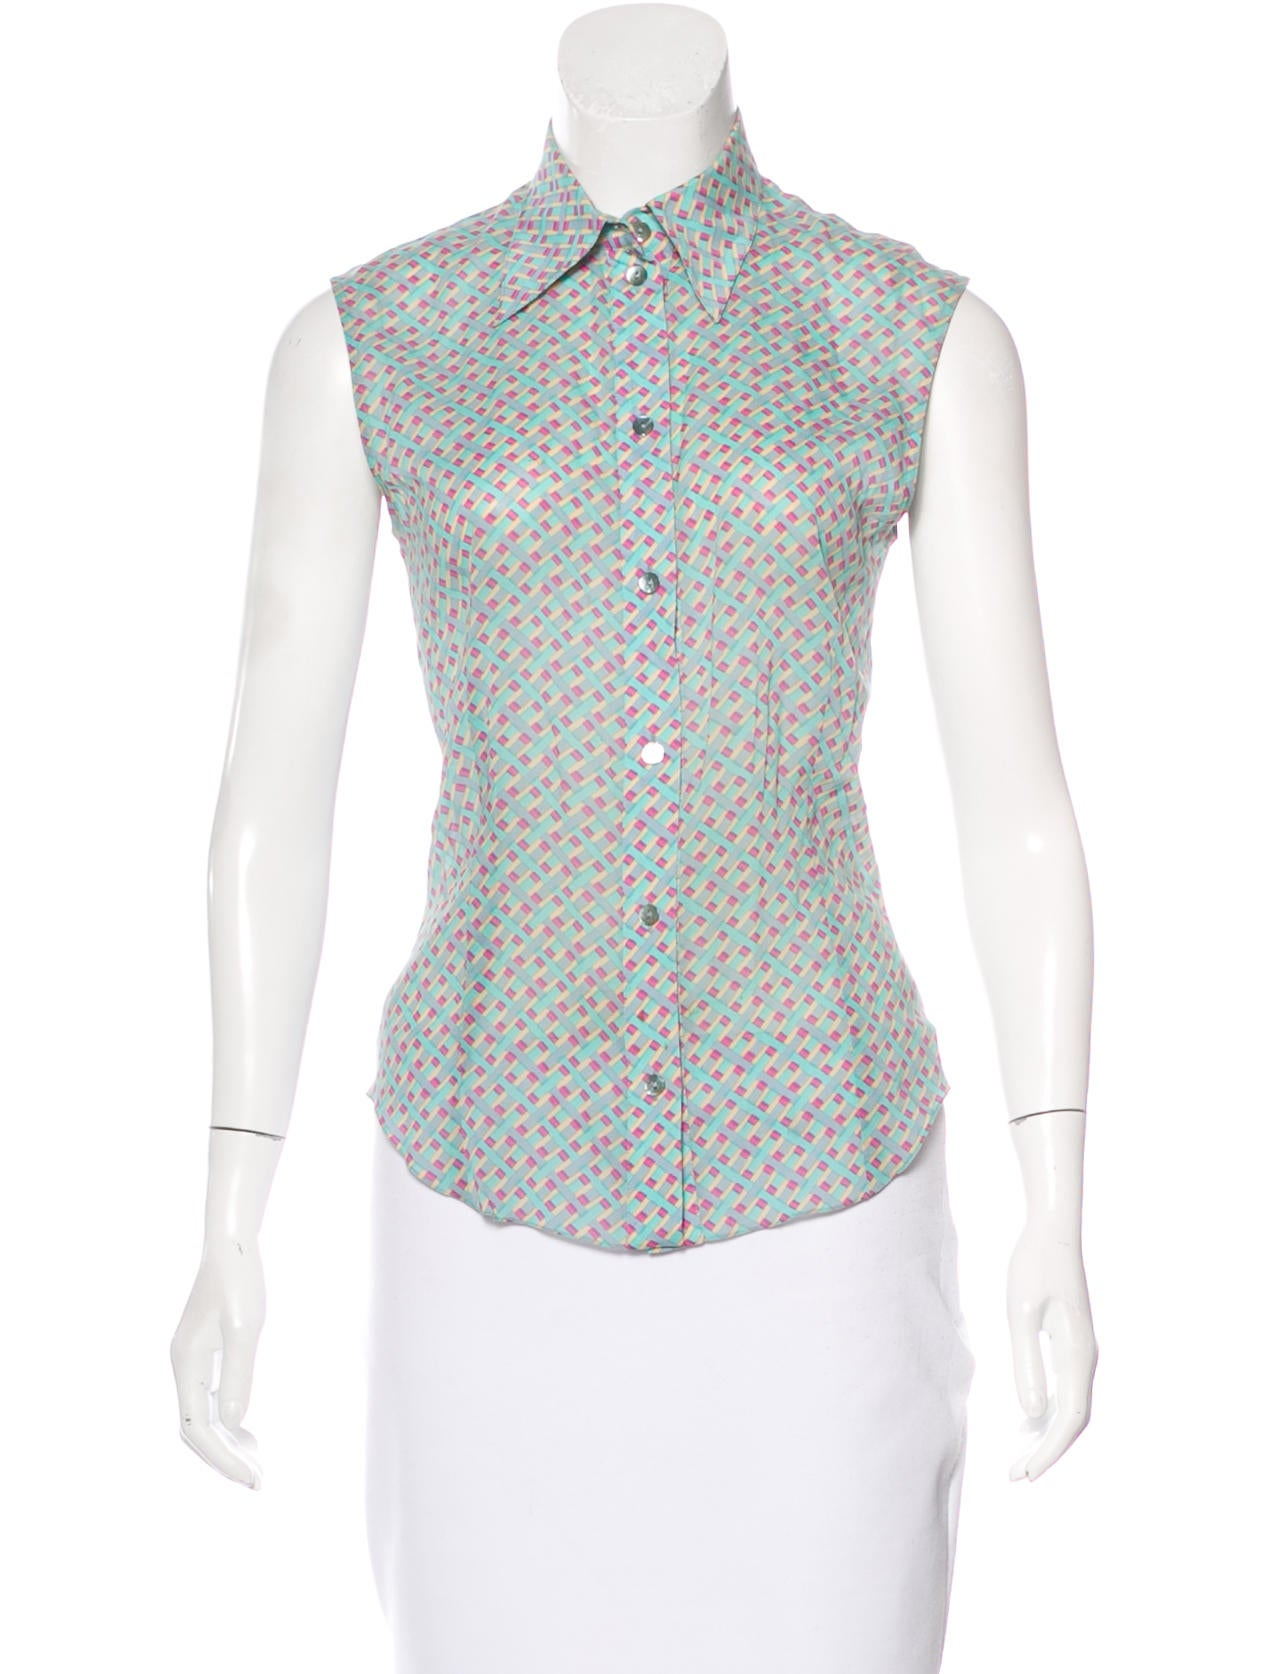 Christian dior printed button up top clothing chr52994 for Christian dior button up shirt